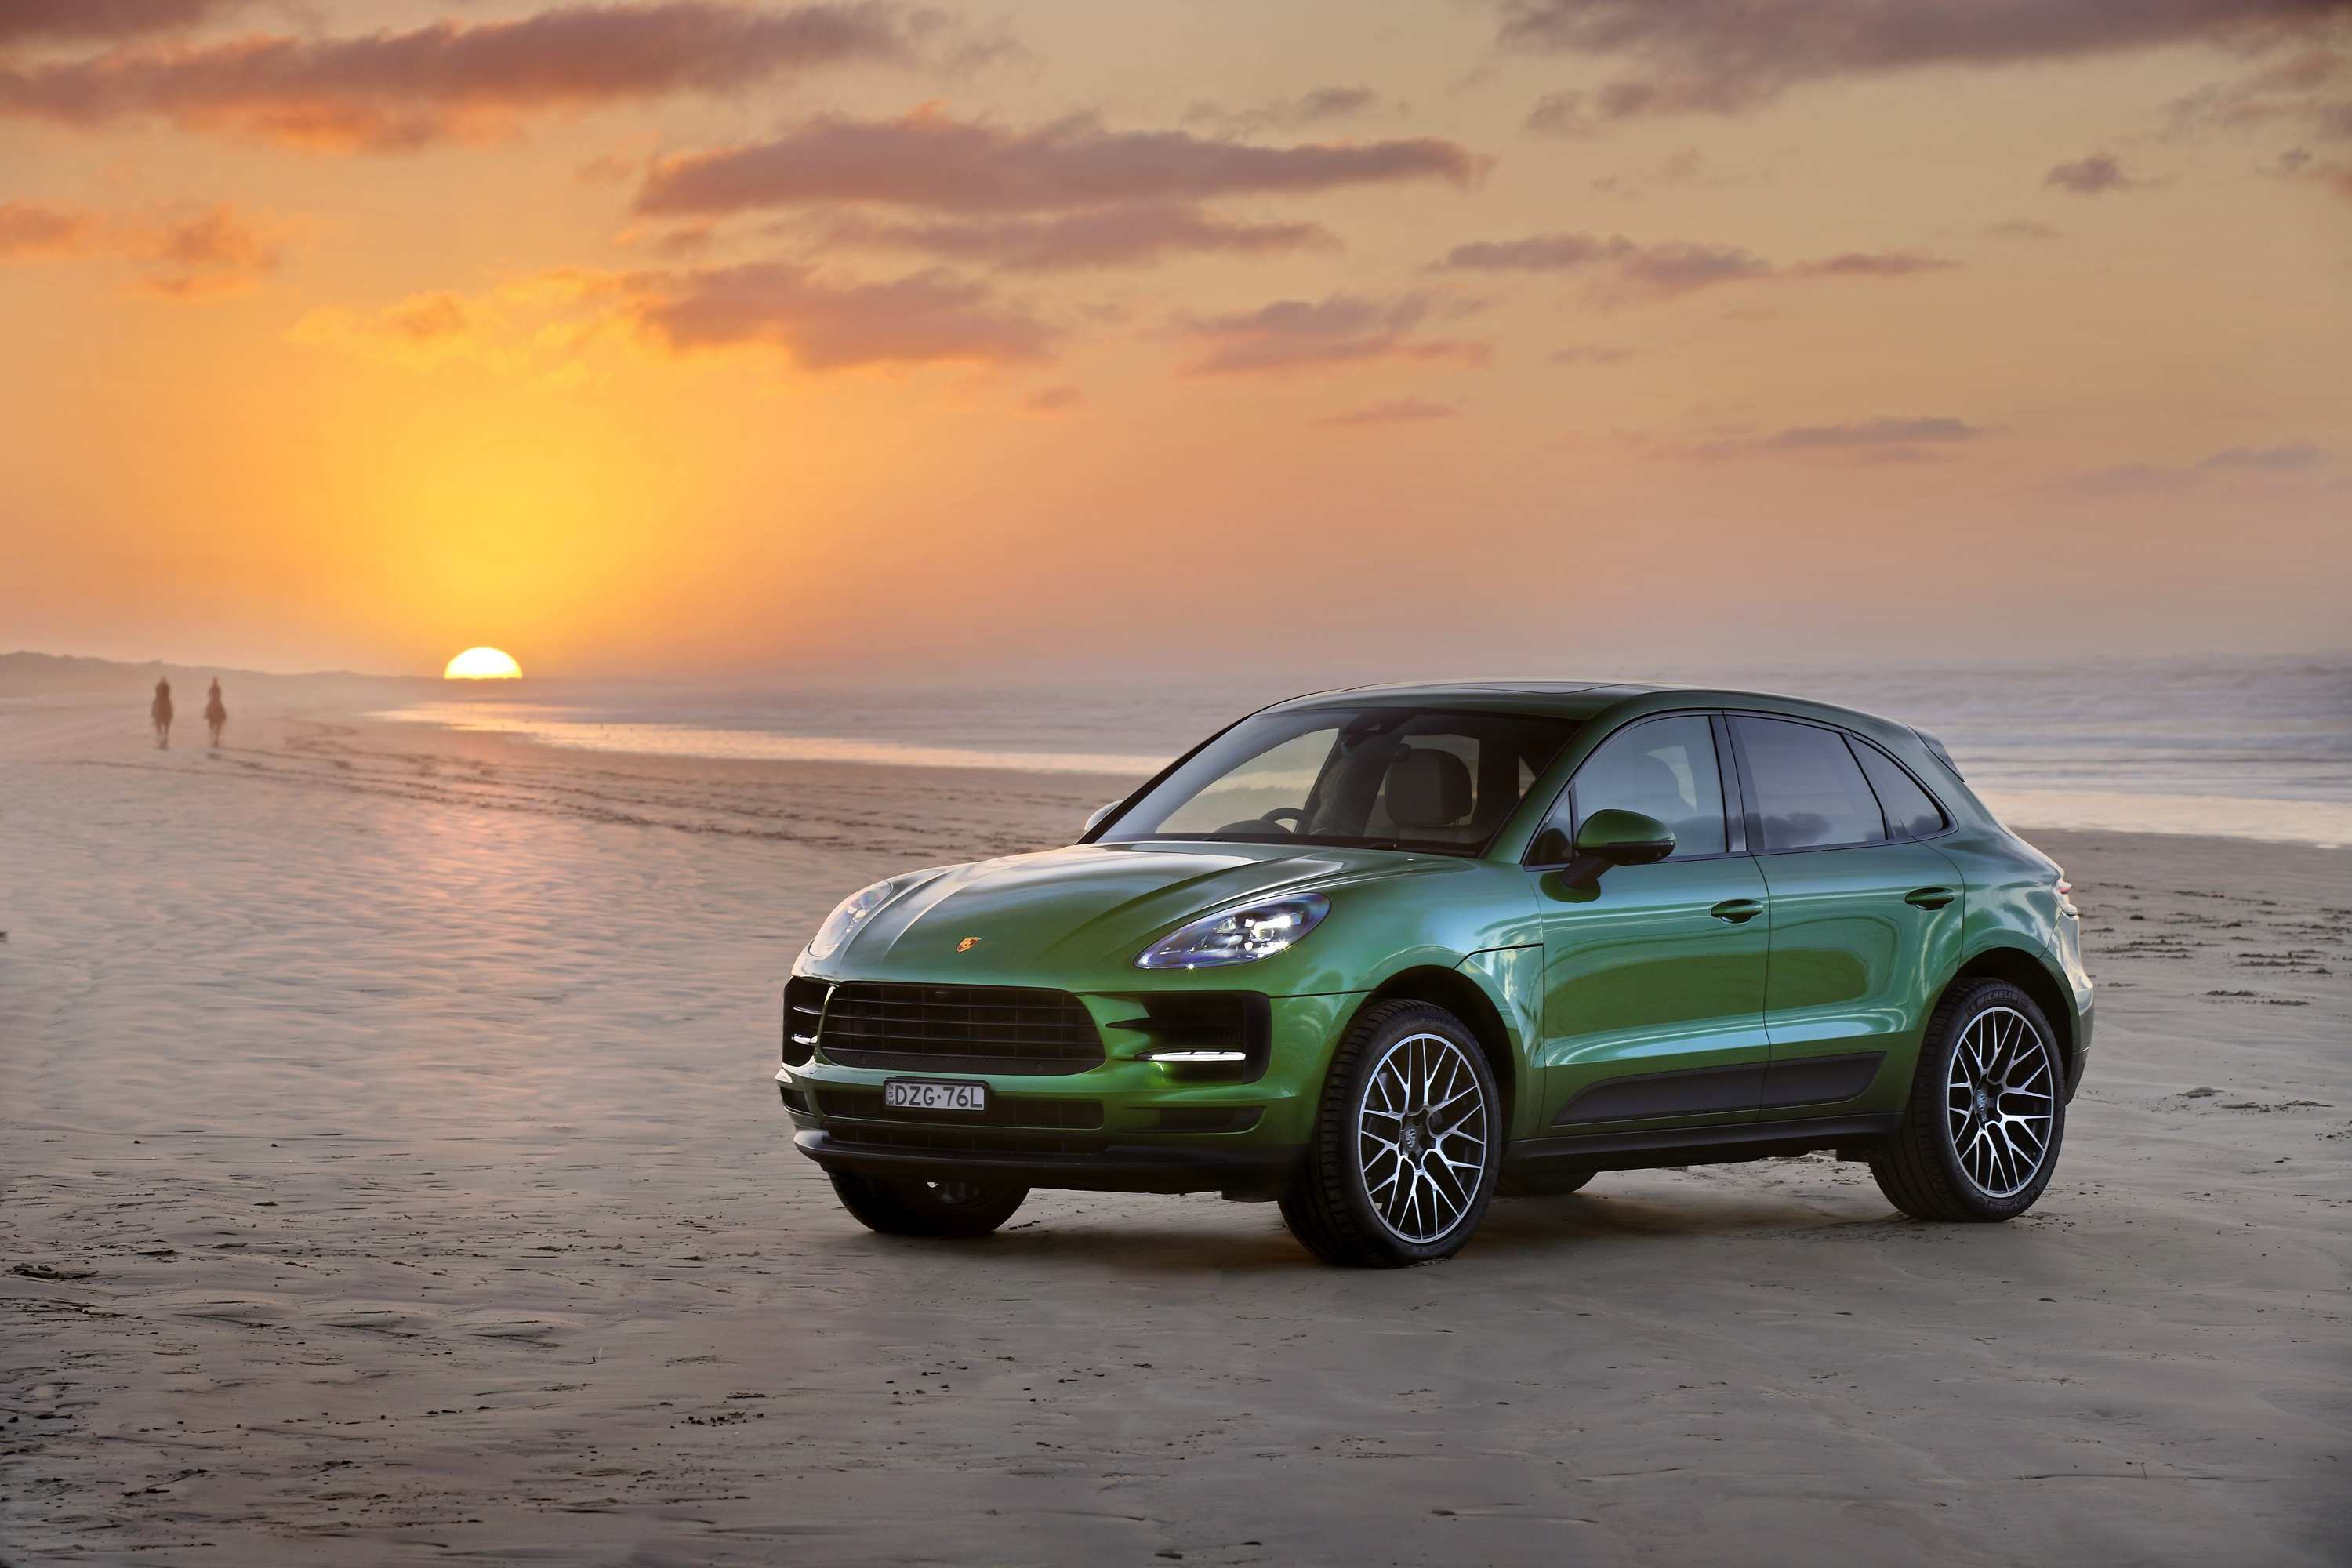 51 The 2019 Porsche Macan Turbo Price And Review